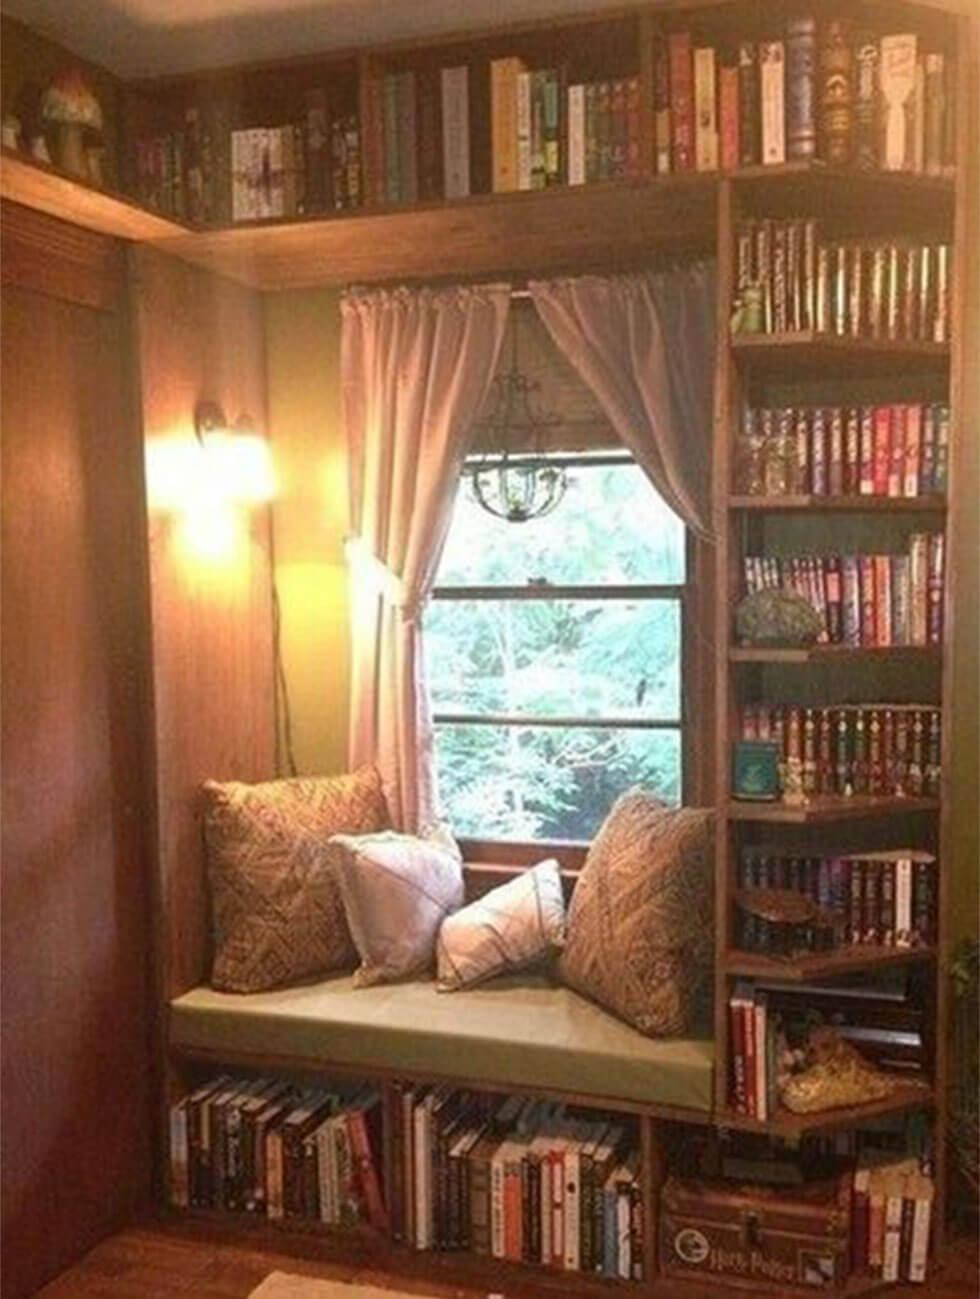 reading nook with bookshelves in walnut tones